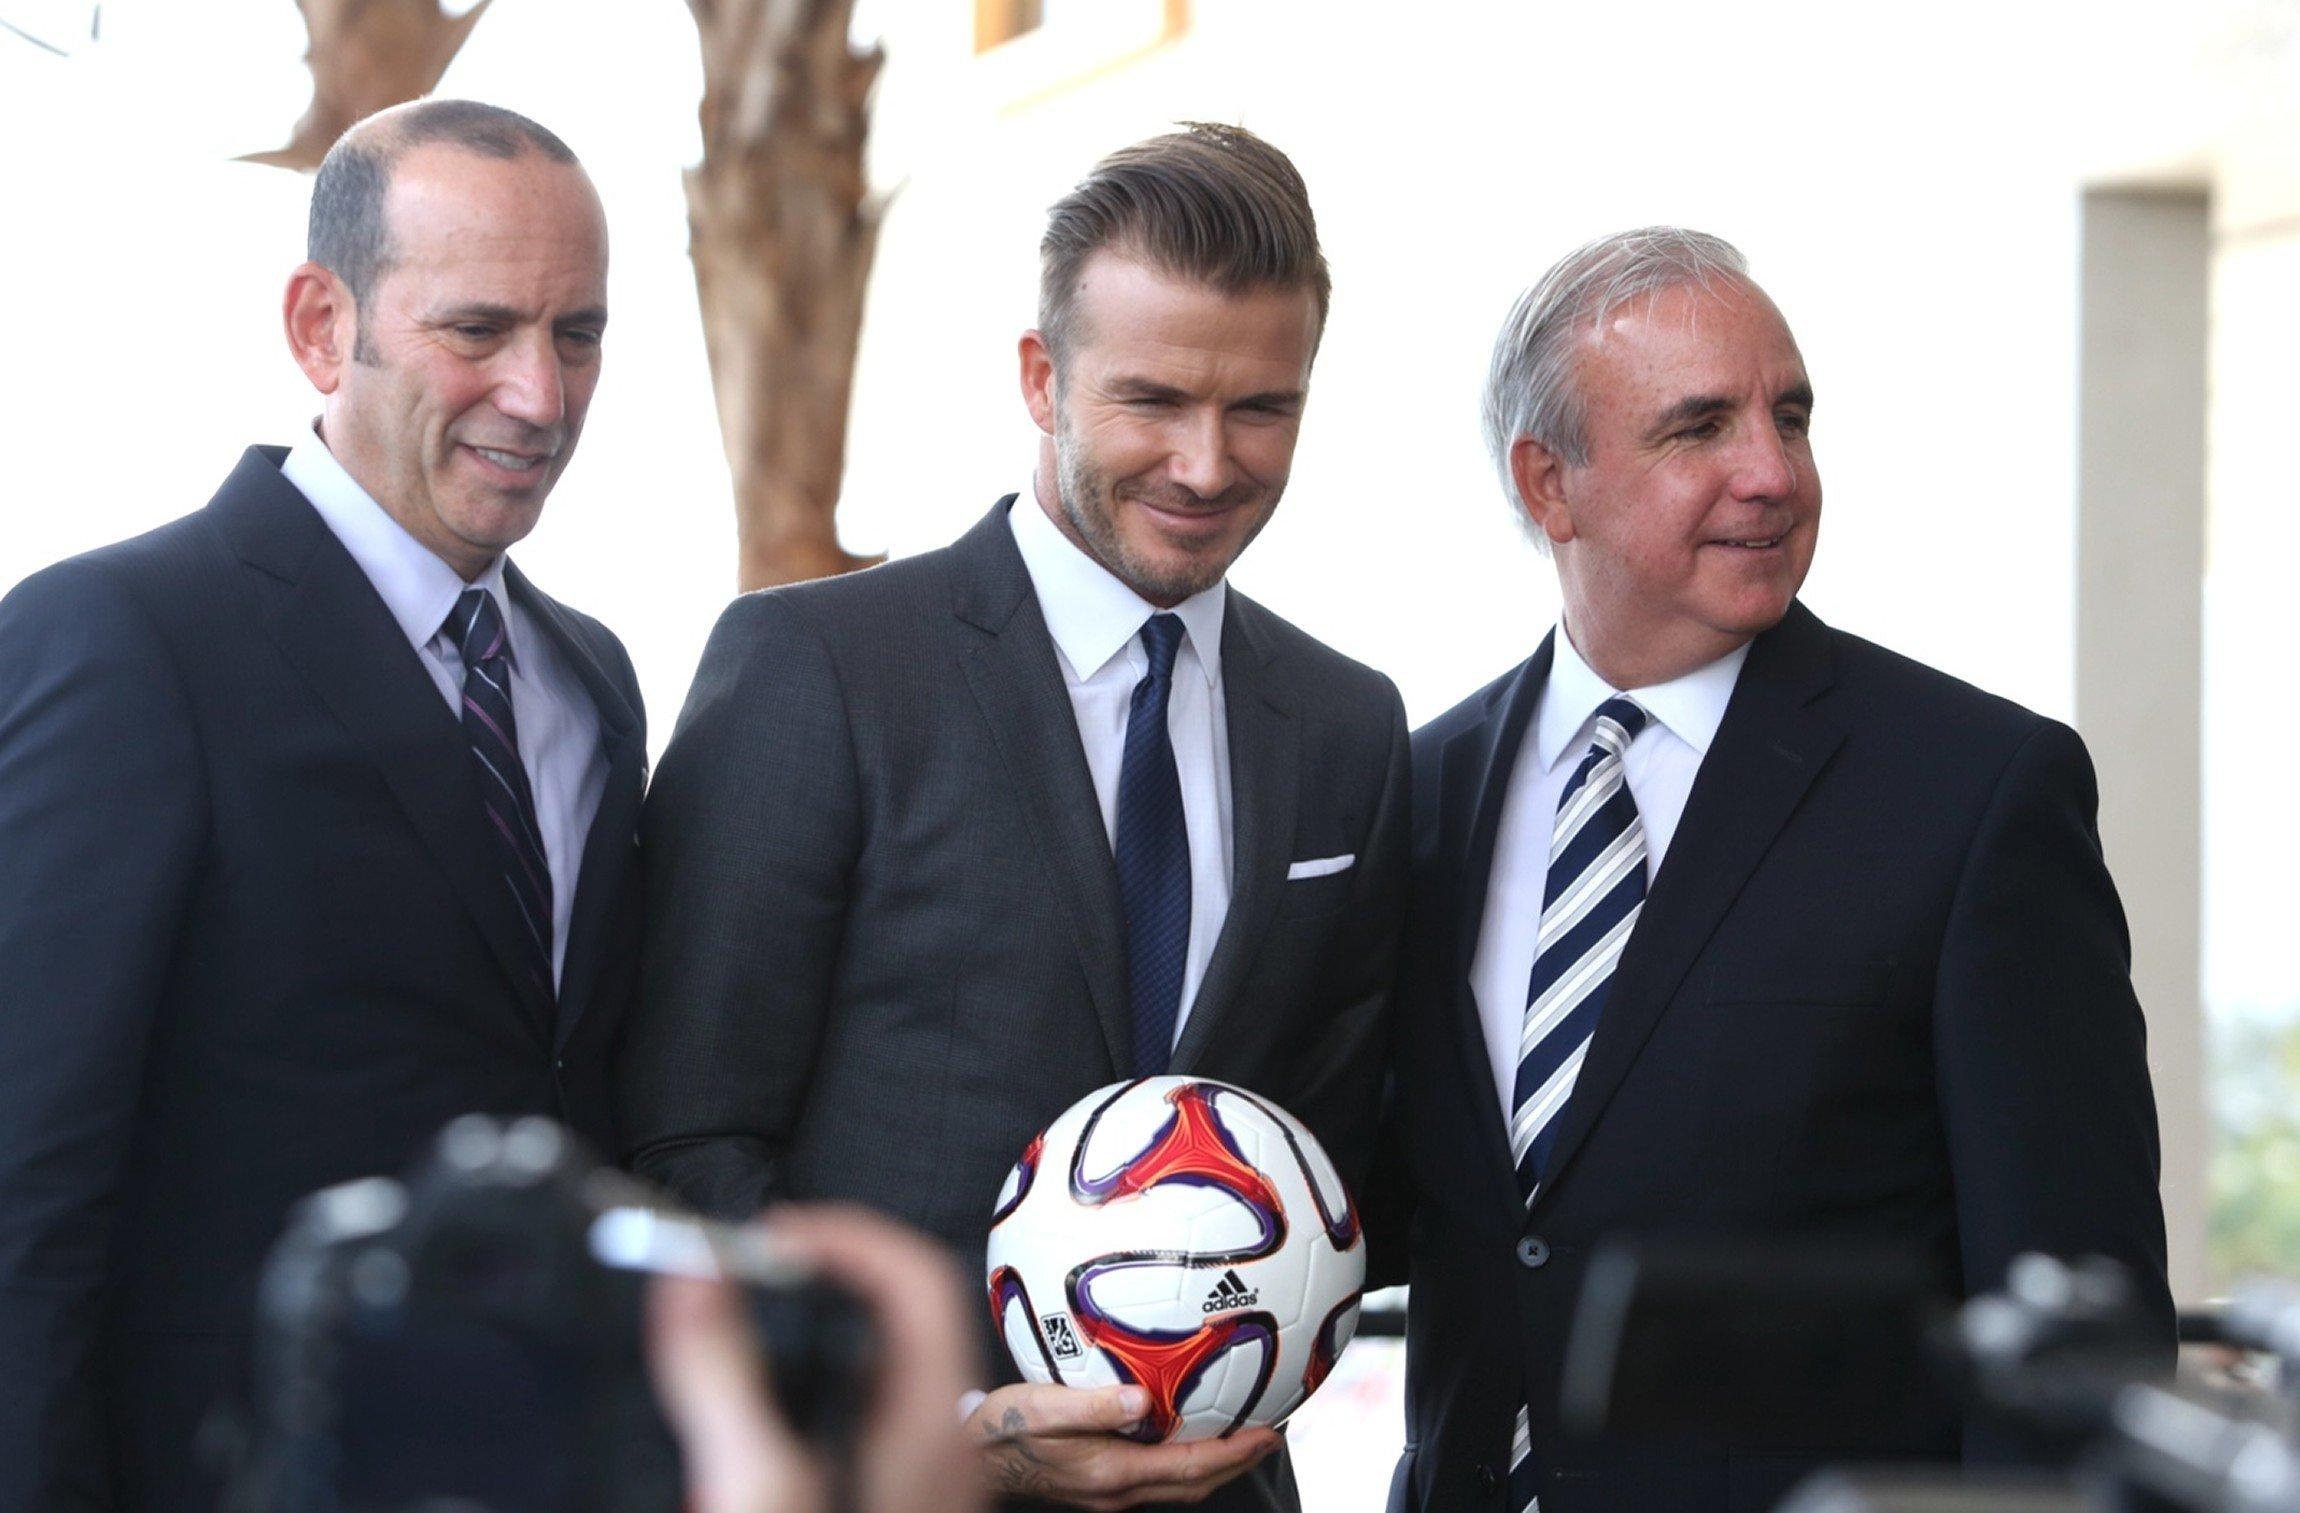 David Beckham Looks To An Unlikely Partner To Bring Soccer To Miami